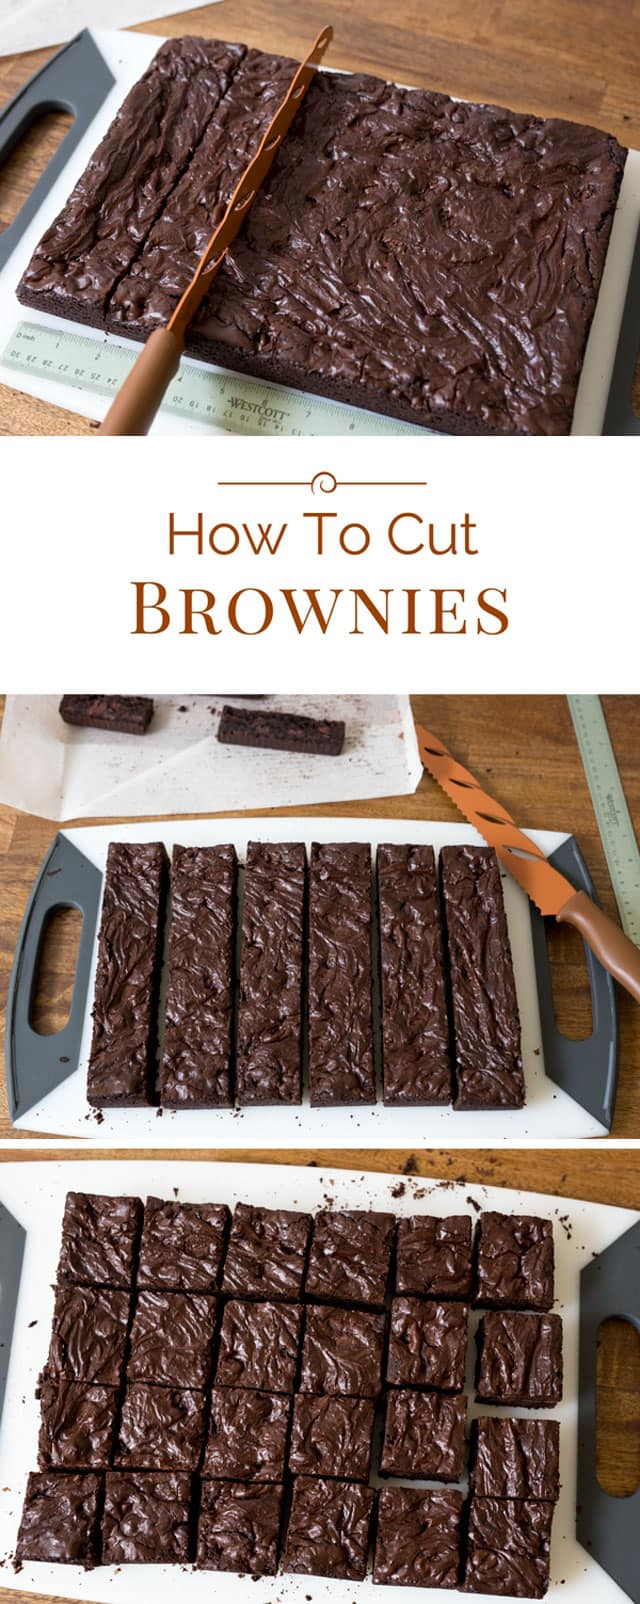 My daughter recently saw me cutting brownies and said I should do a post and share with everyone how I cut brownies. So today I'm sharing my best tips on How To Cut Brownies.